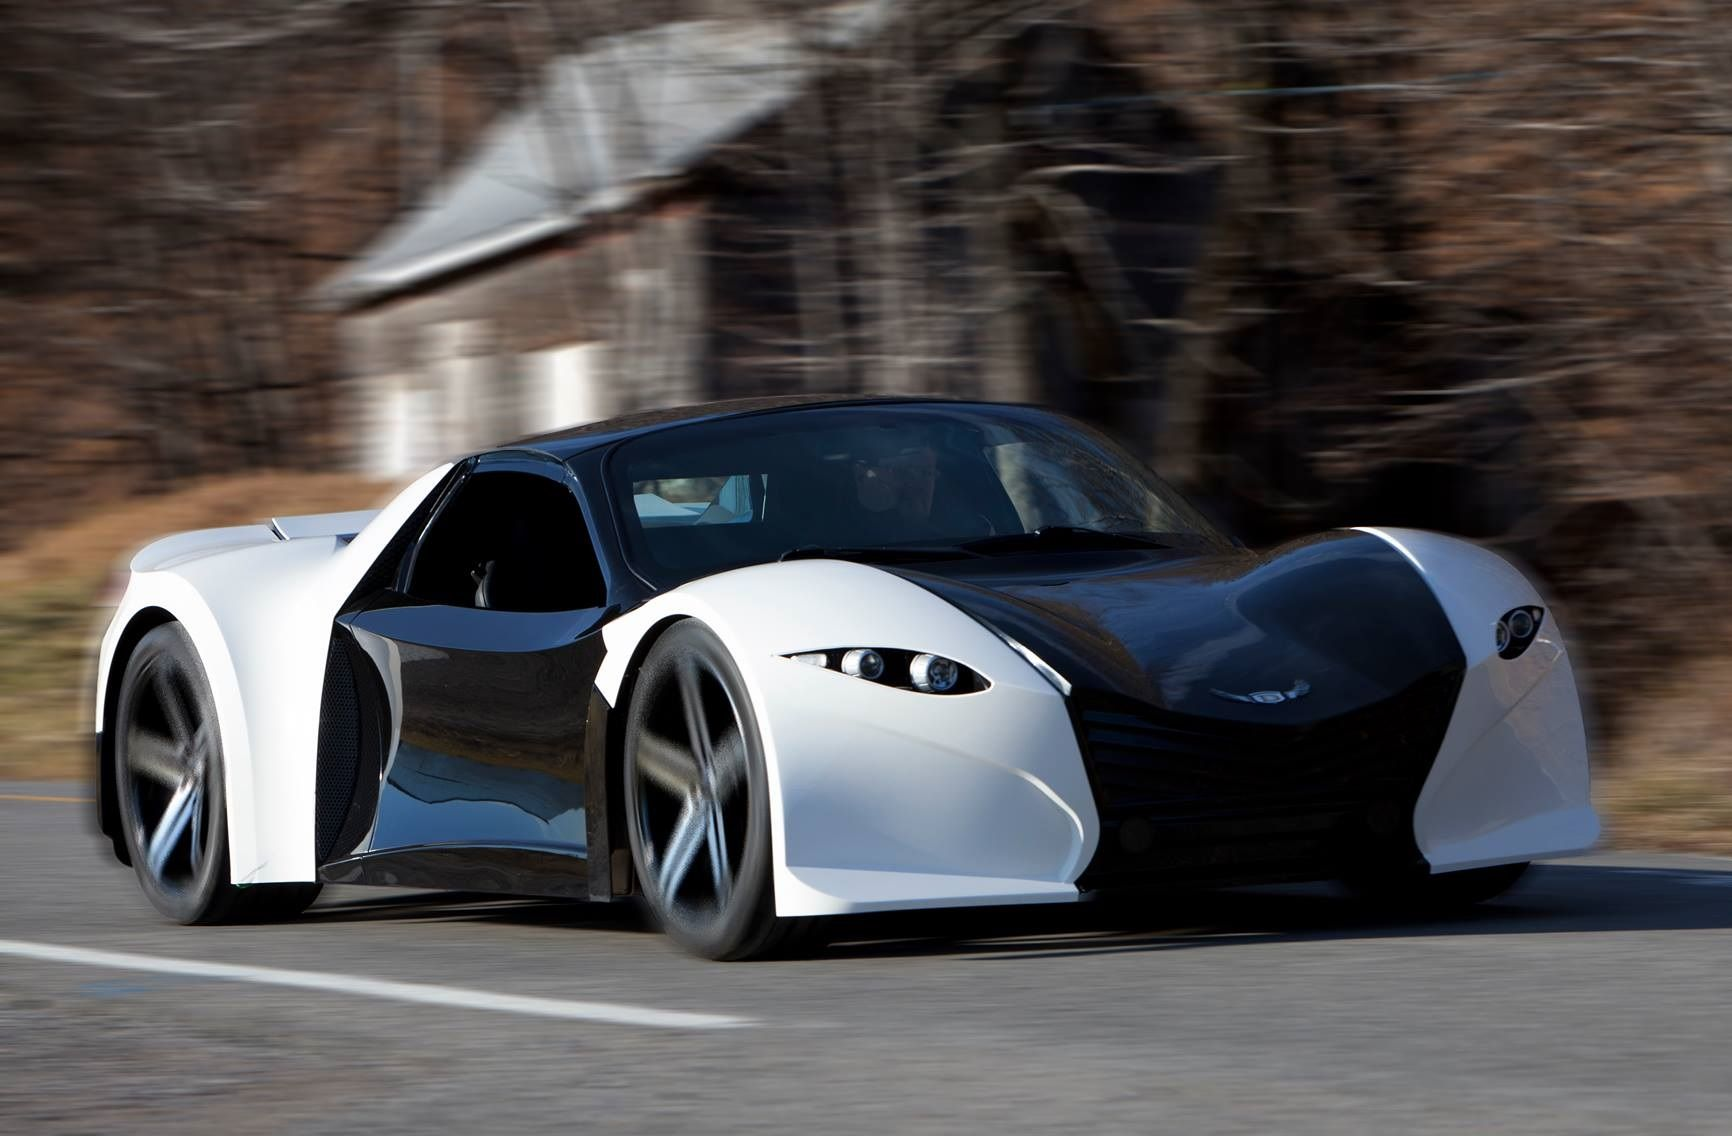 2015 jaguar suv release date and price sports cars motor car s pinterest sports cars cars and dream cars